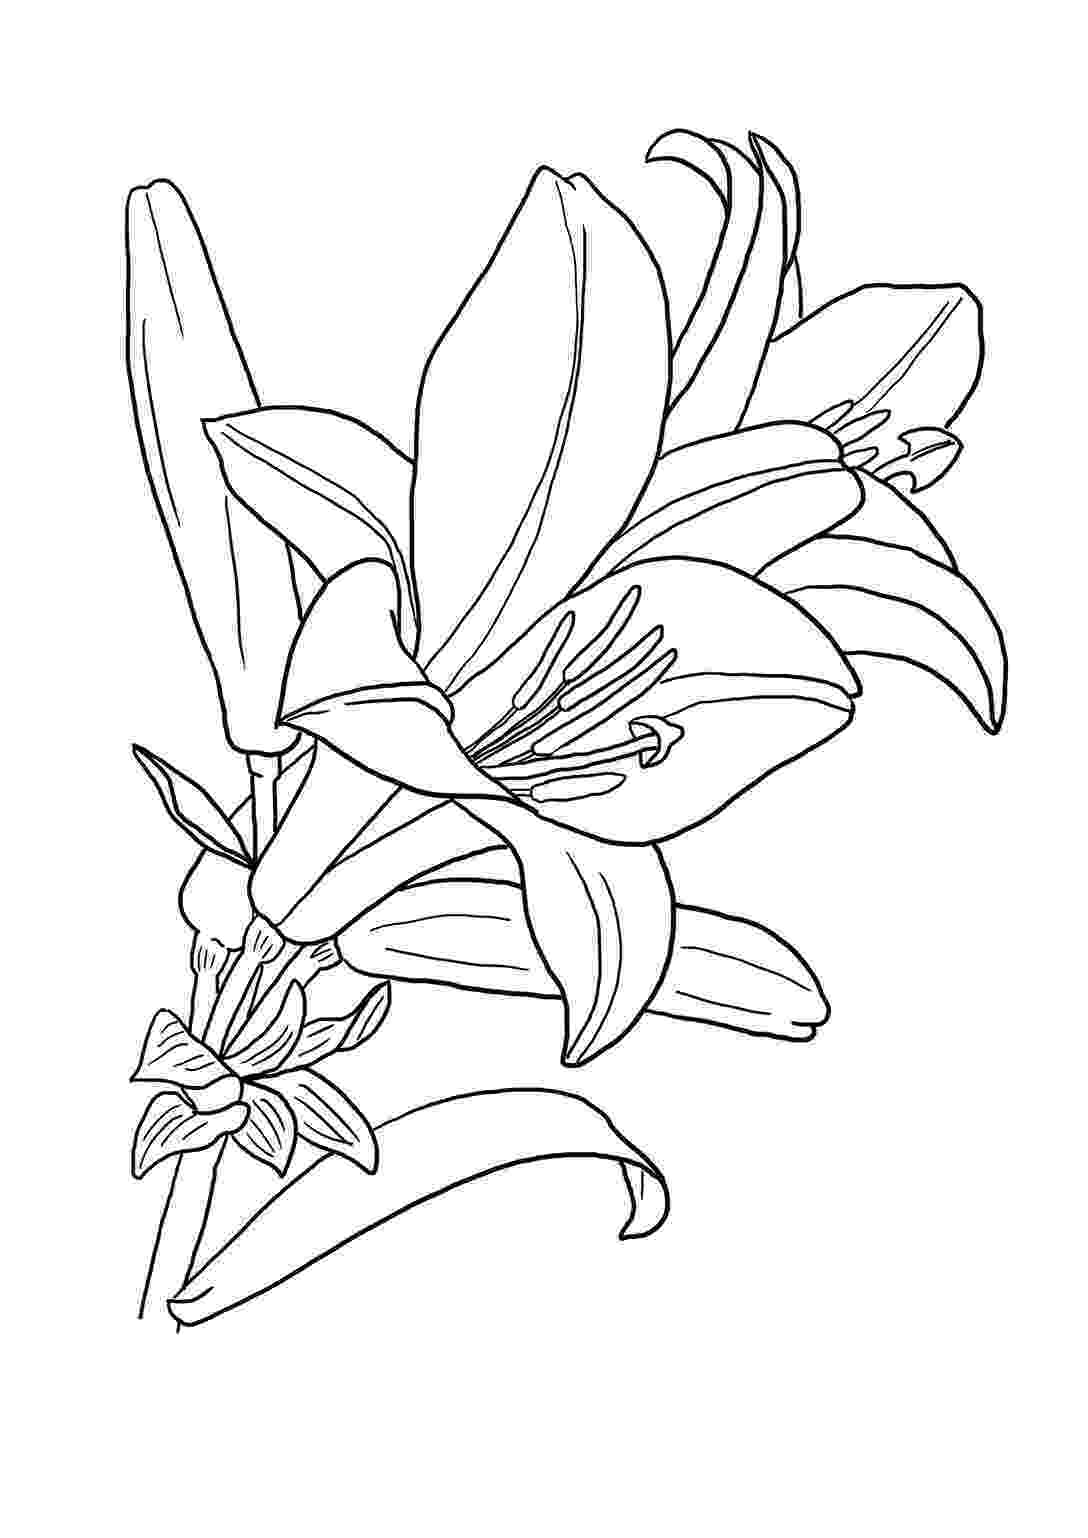 flowers colouring flower with many petals flowers adult coloring pages flowers colouring